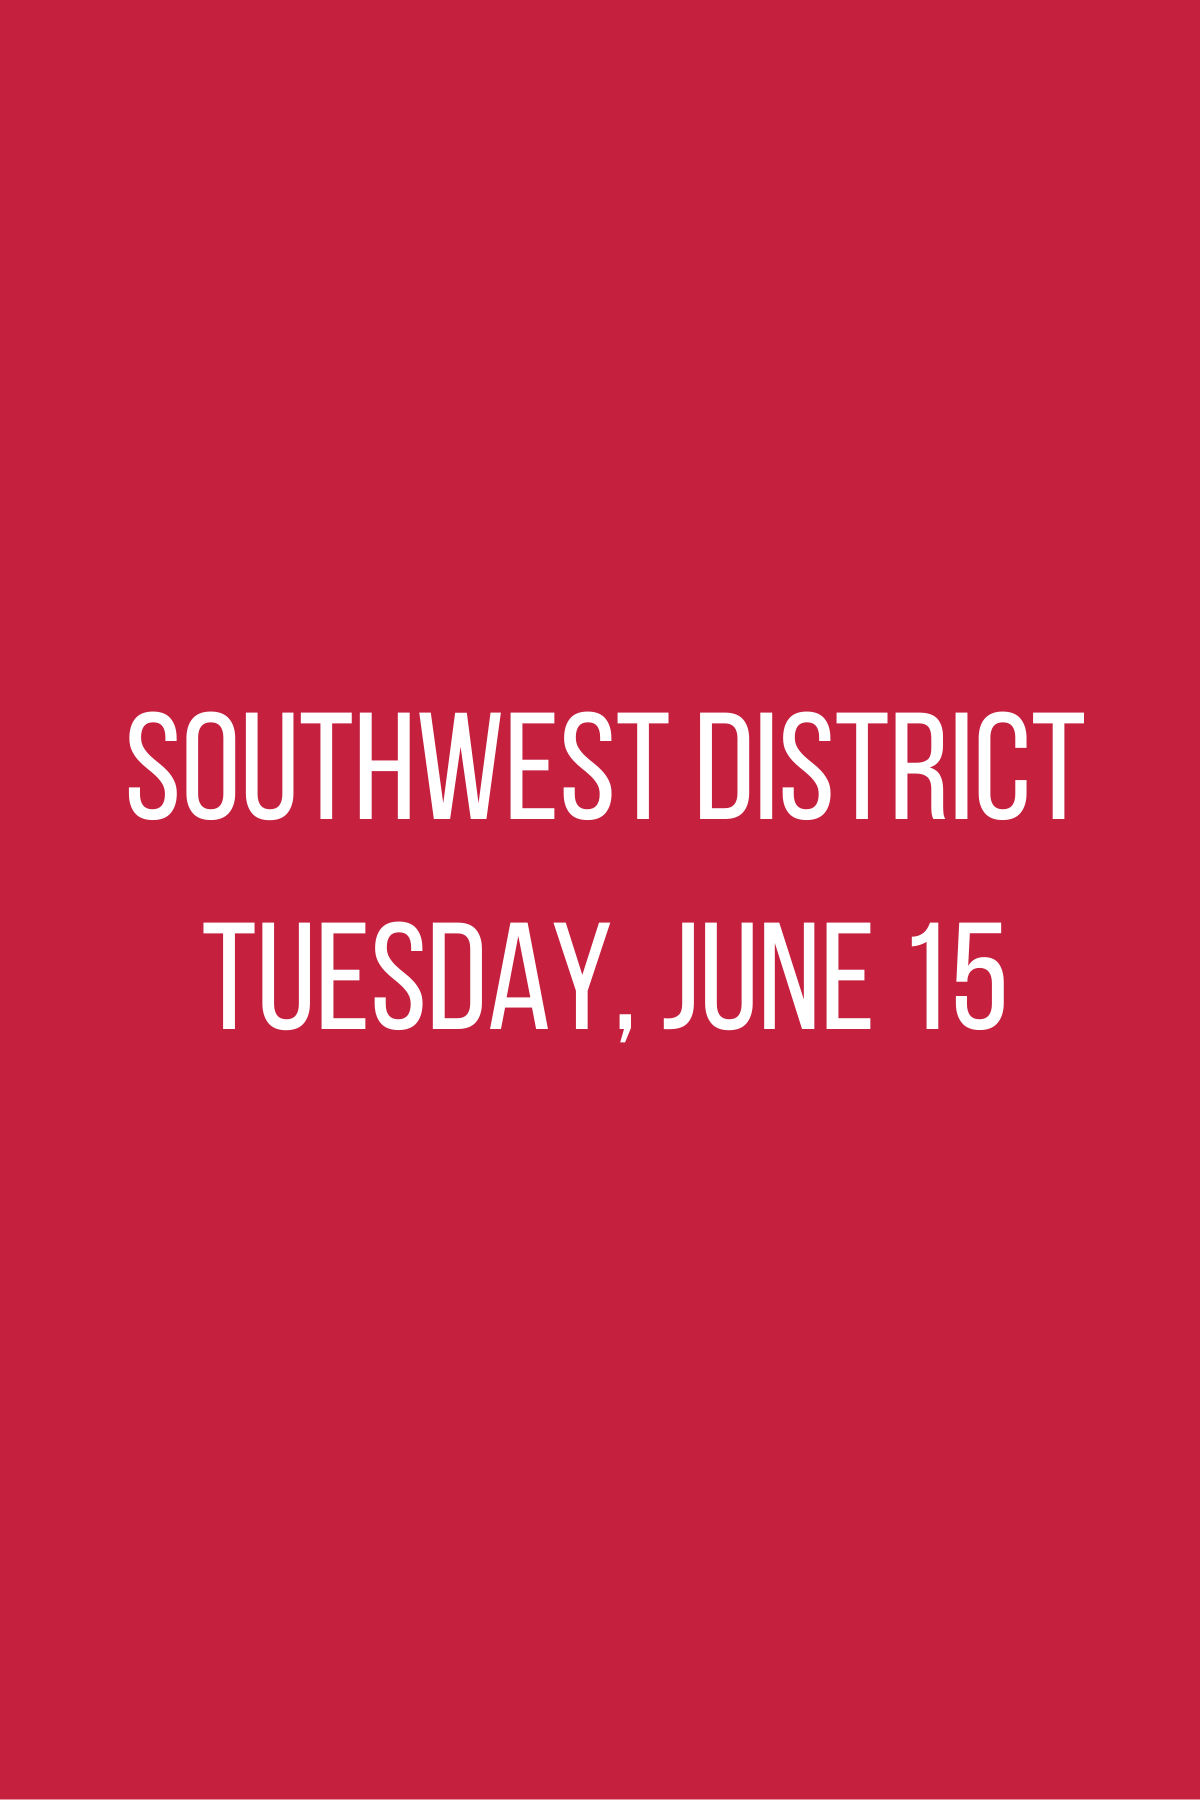 Southwest District Meeting - Tuesday, June 15